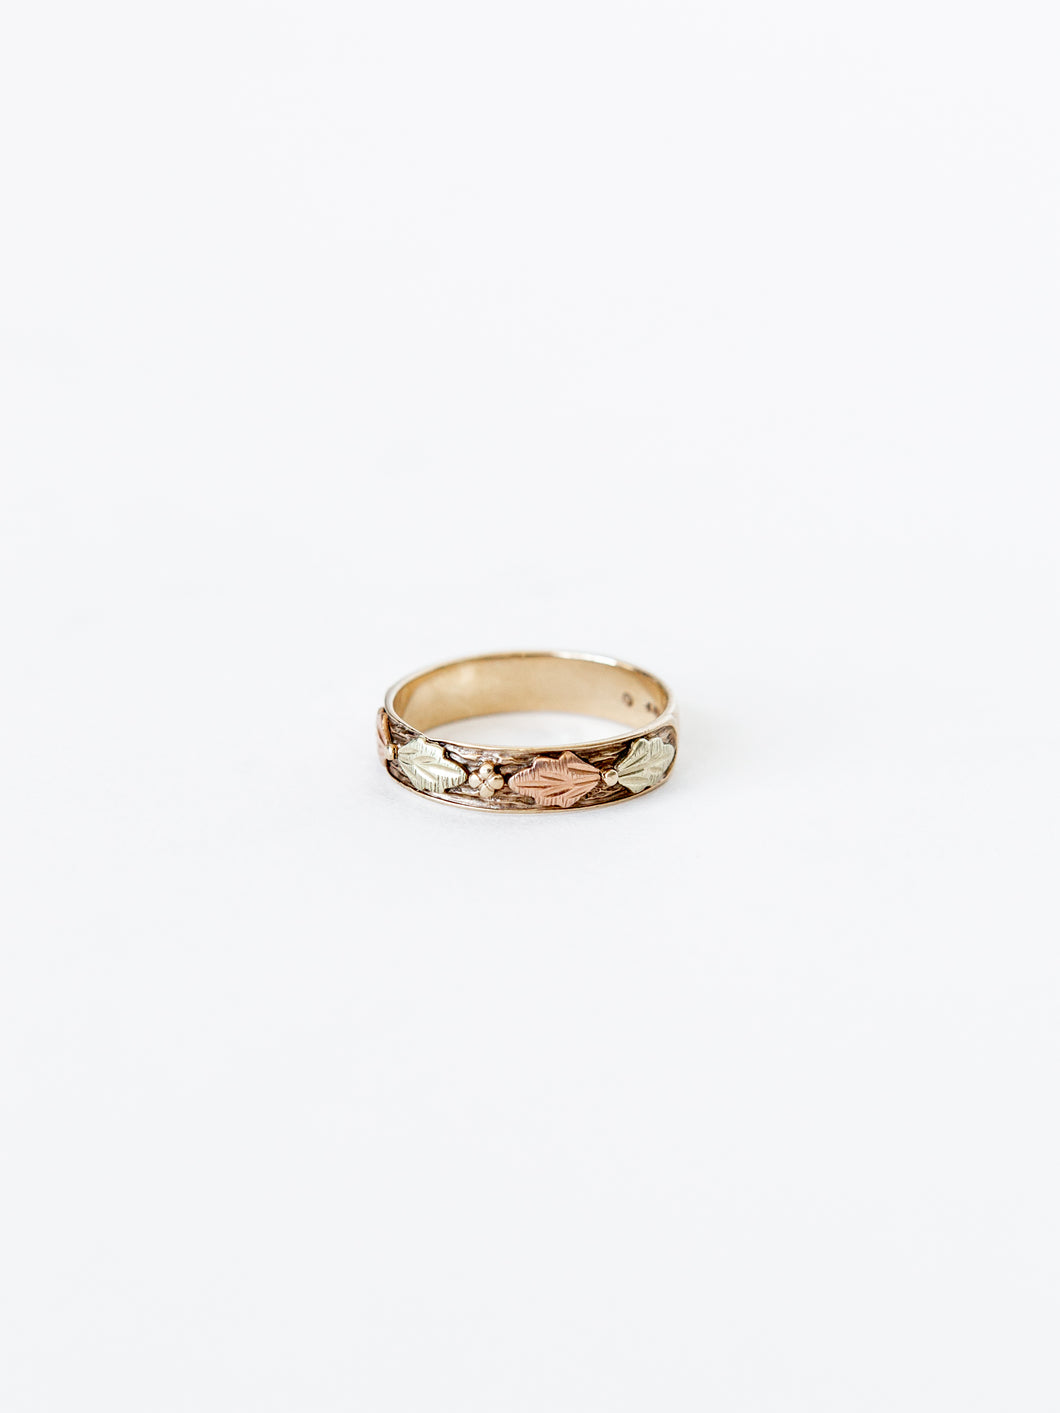 Victorian 10K Gold Ring with Leaves Detail